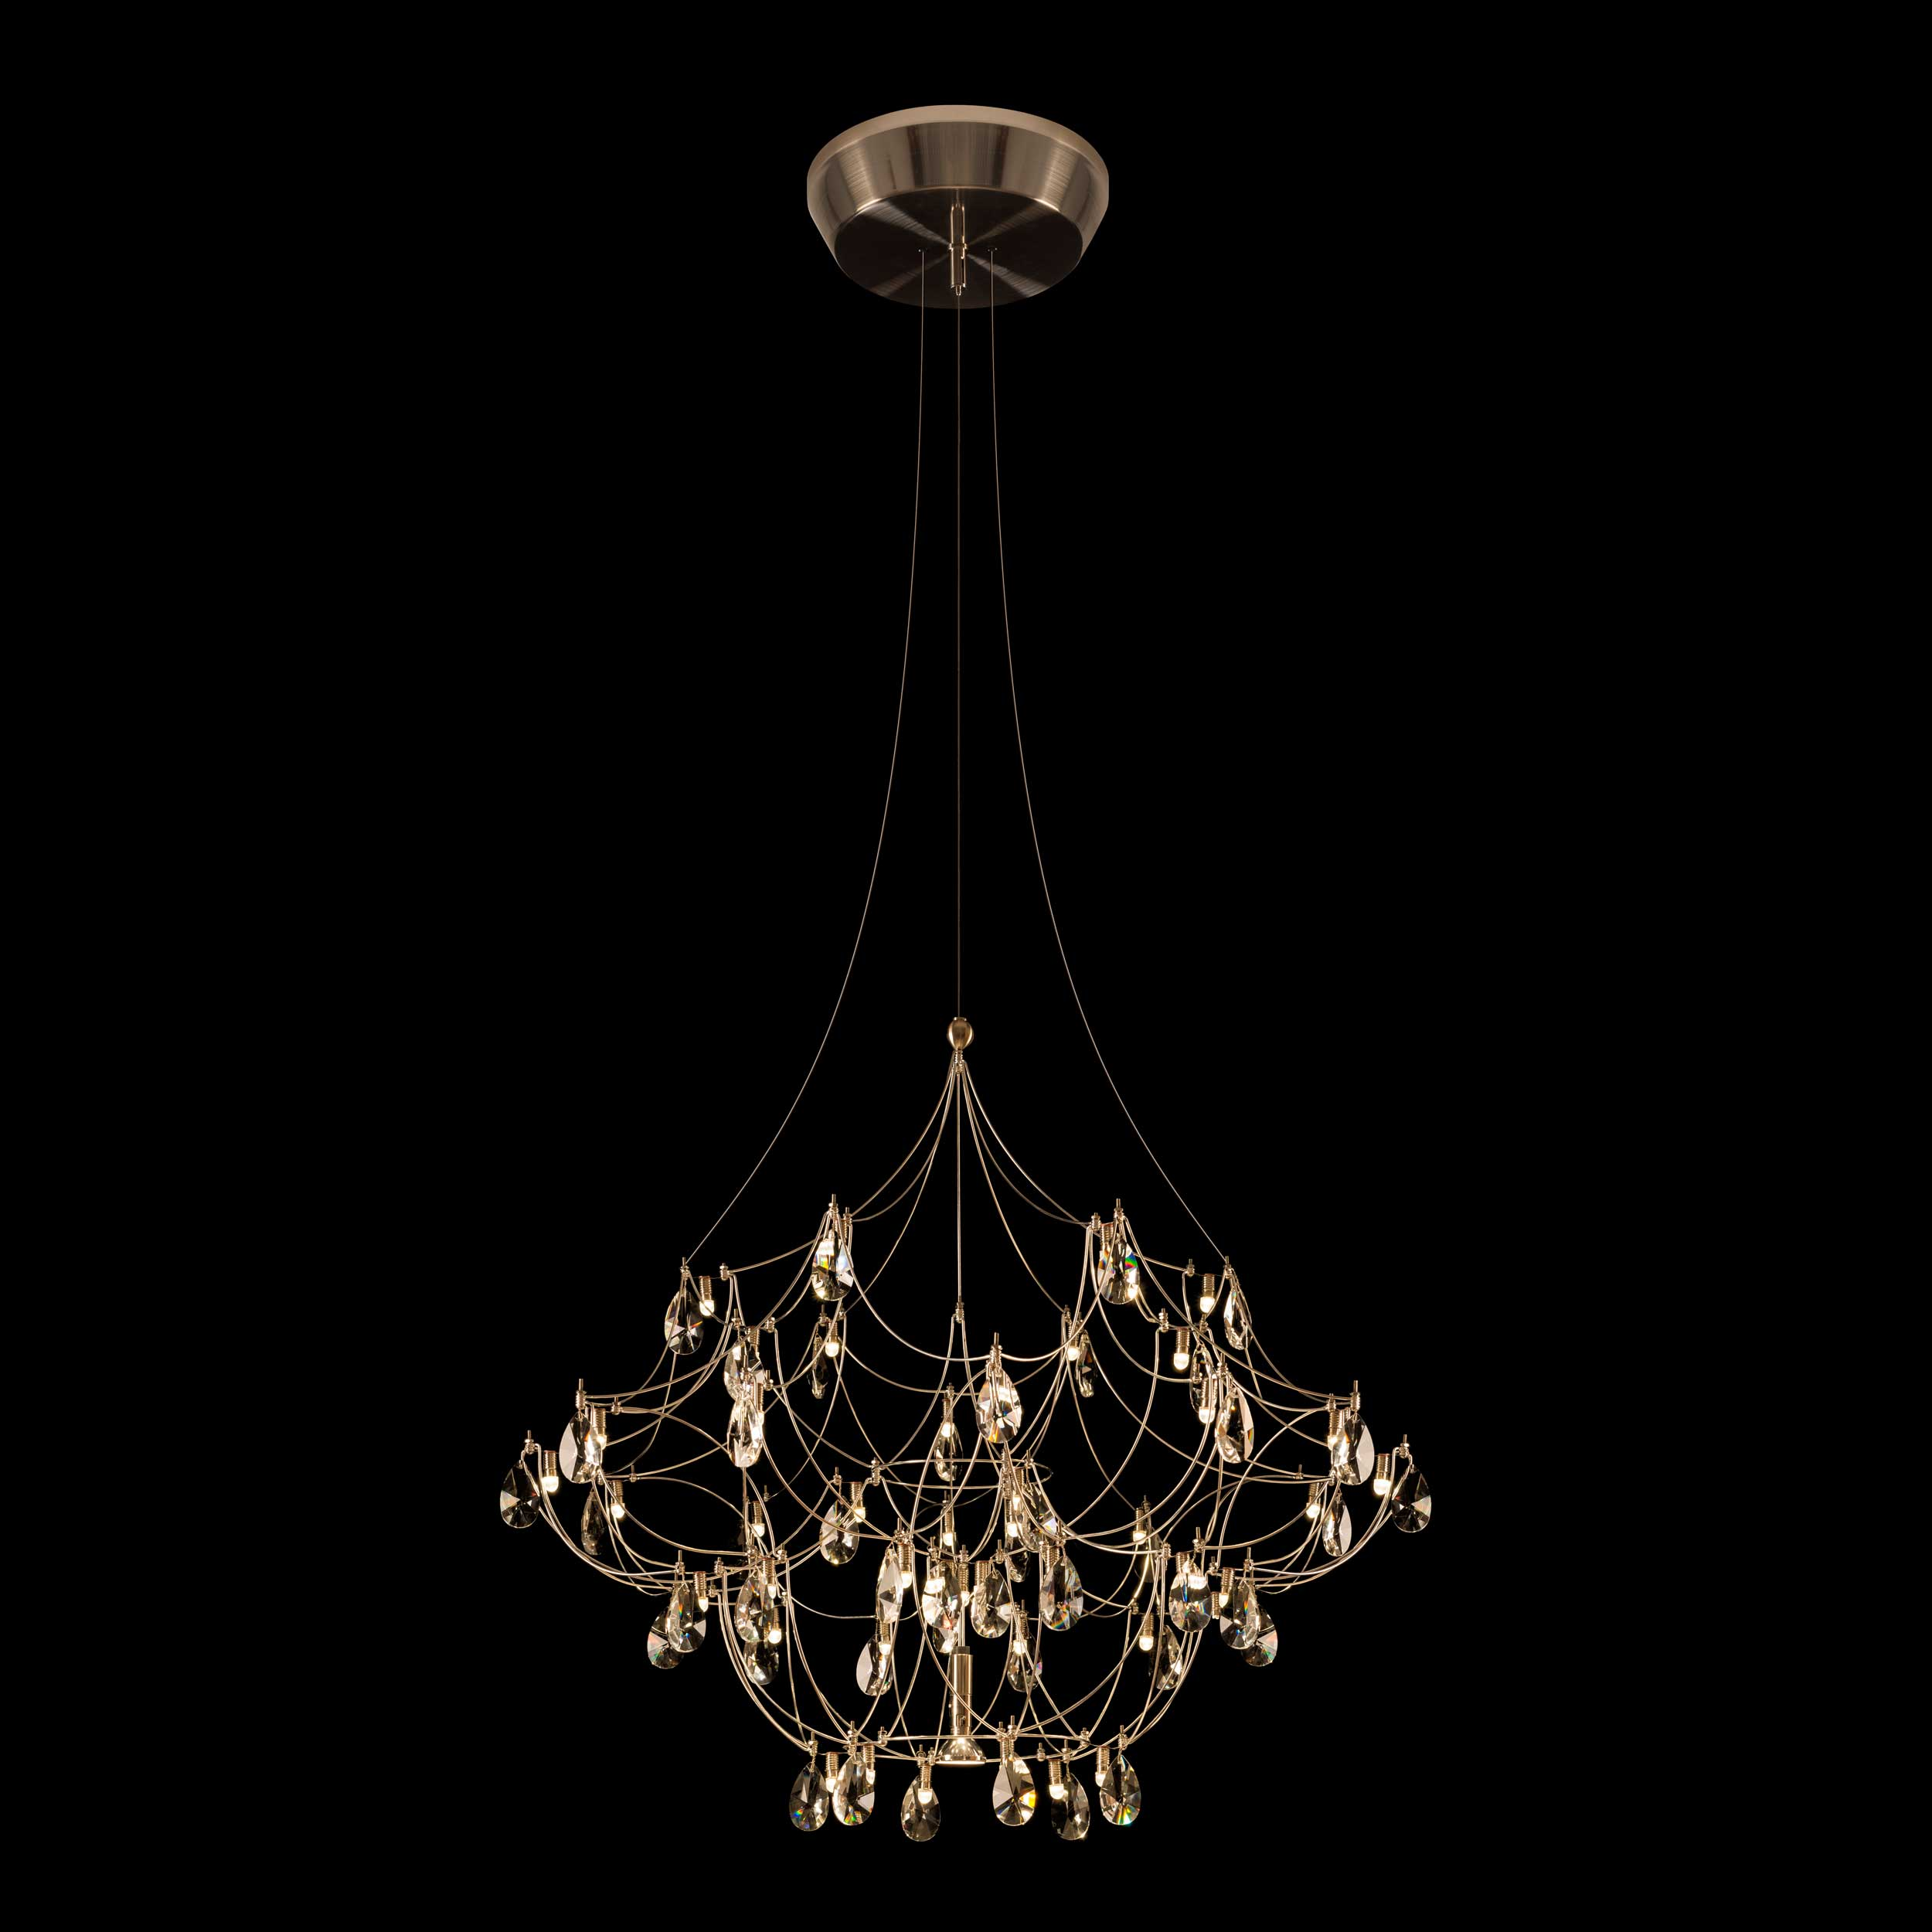 crystal galaxy chandelier with downlight by edge lighting. Black Bedroom Furniture Sets. Home Design Ideas